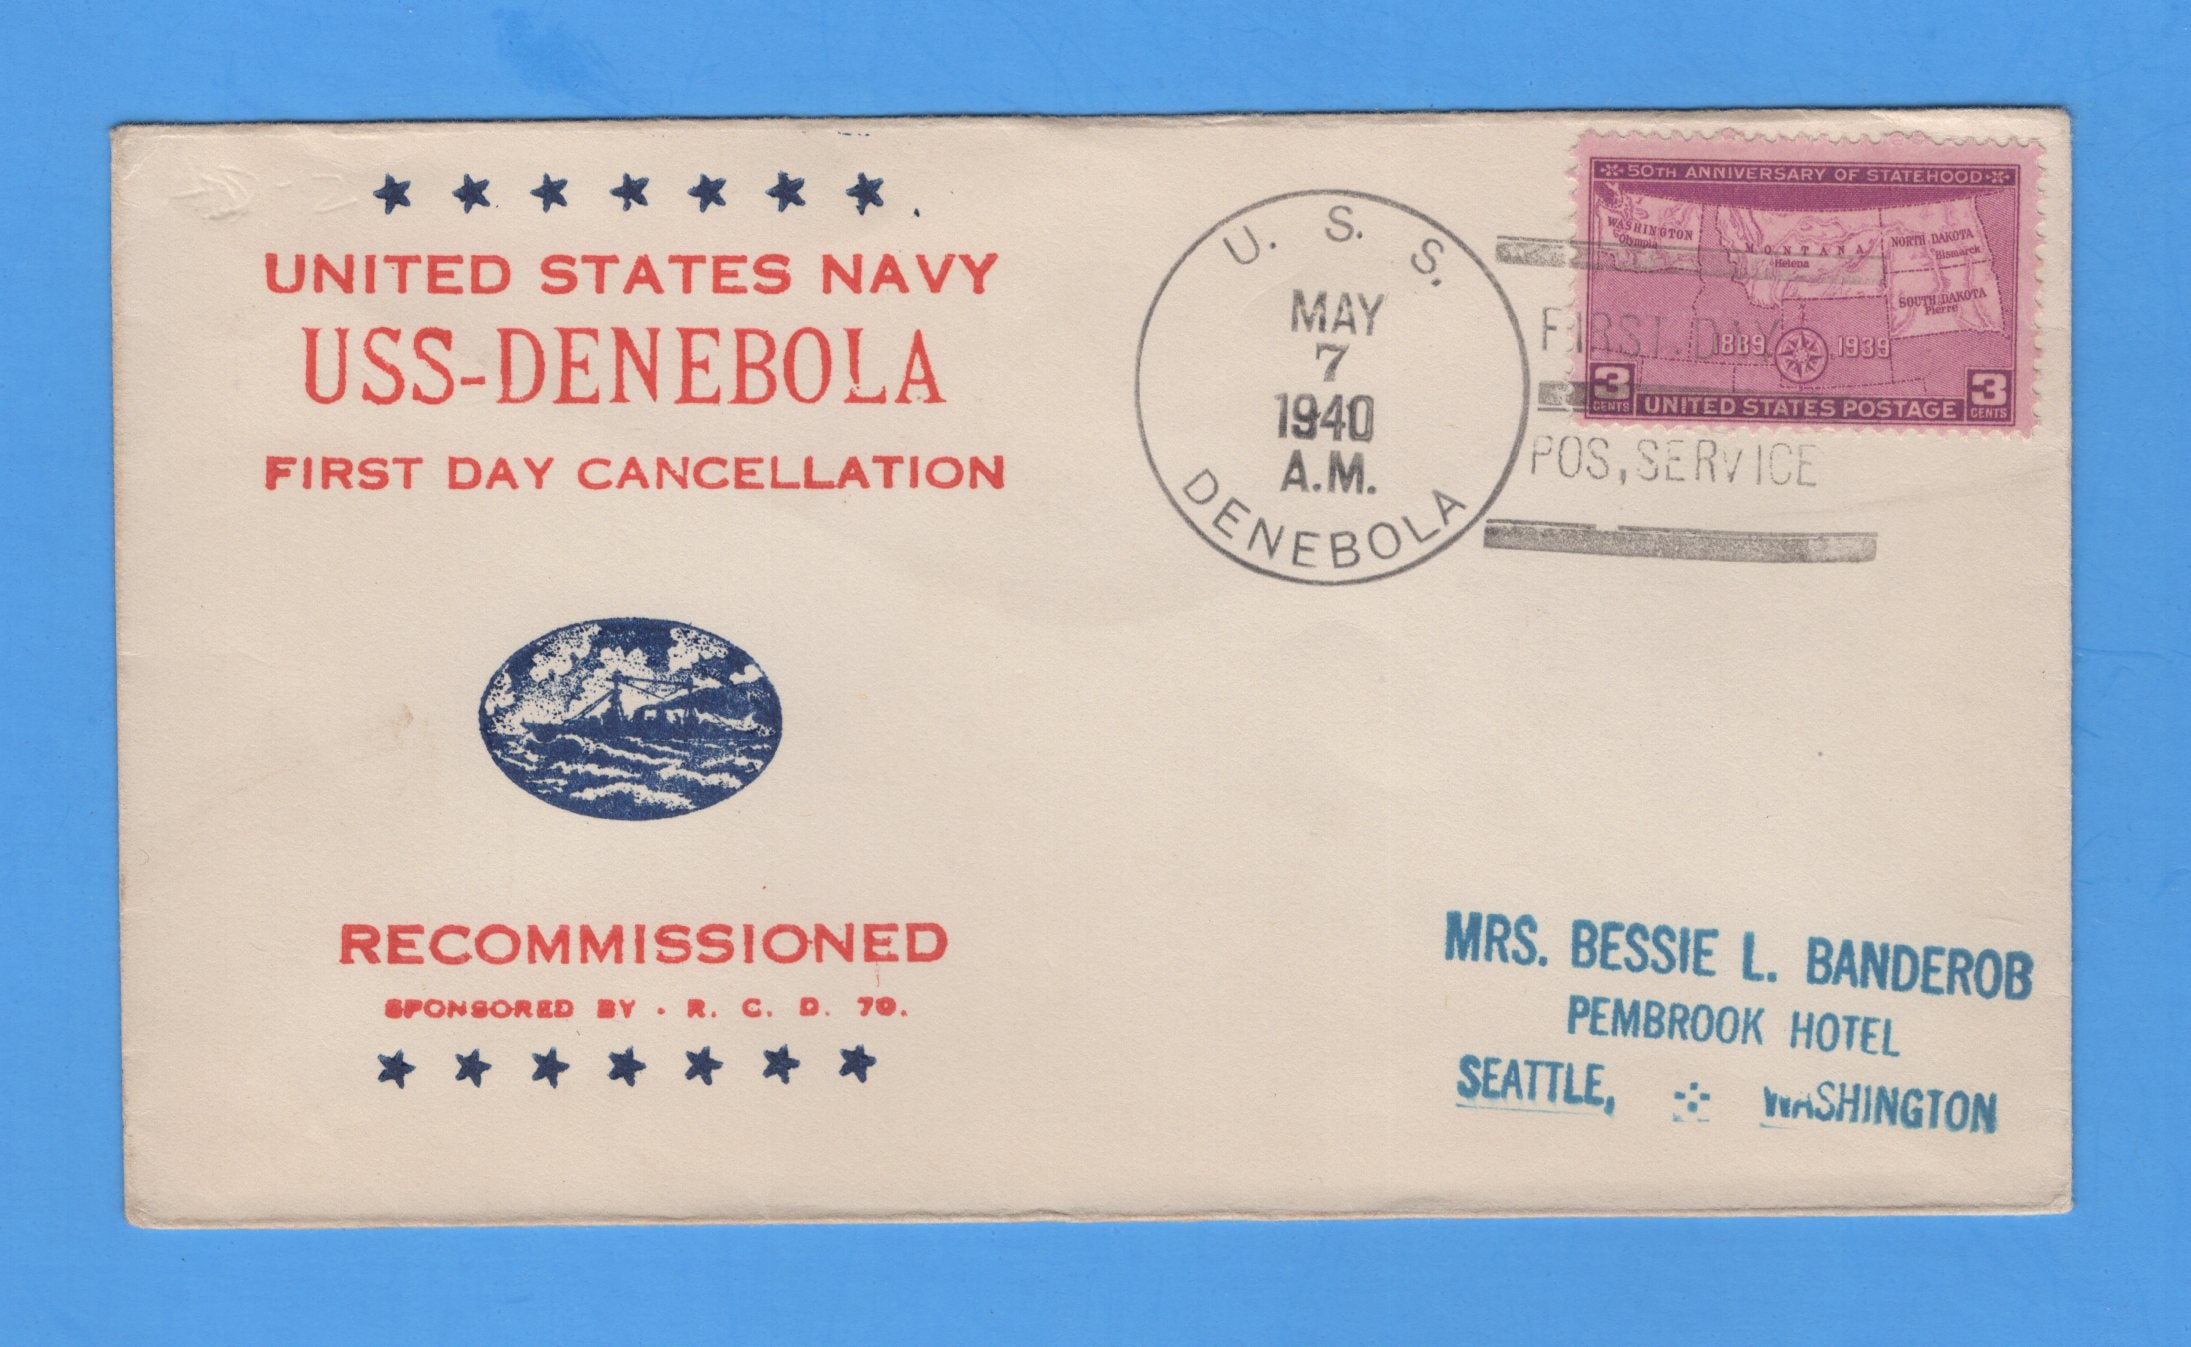 USS Denebola AD-12 First Day Postal Service after Recommission May 7, 1940